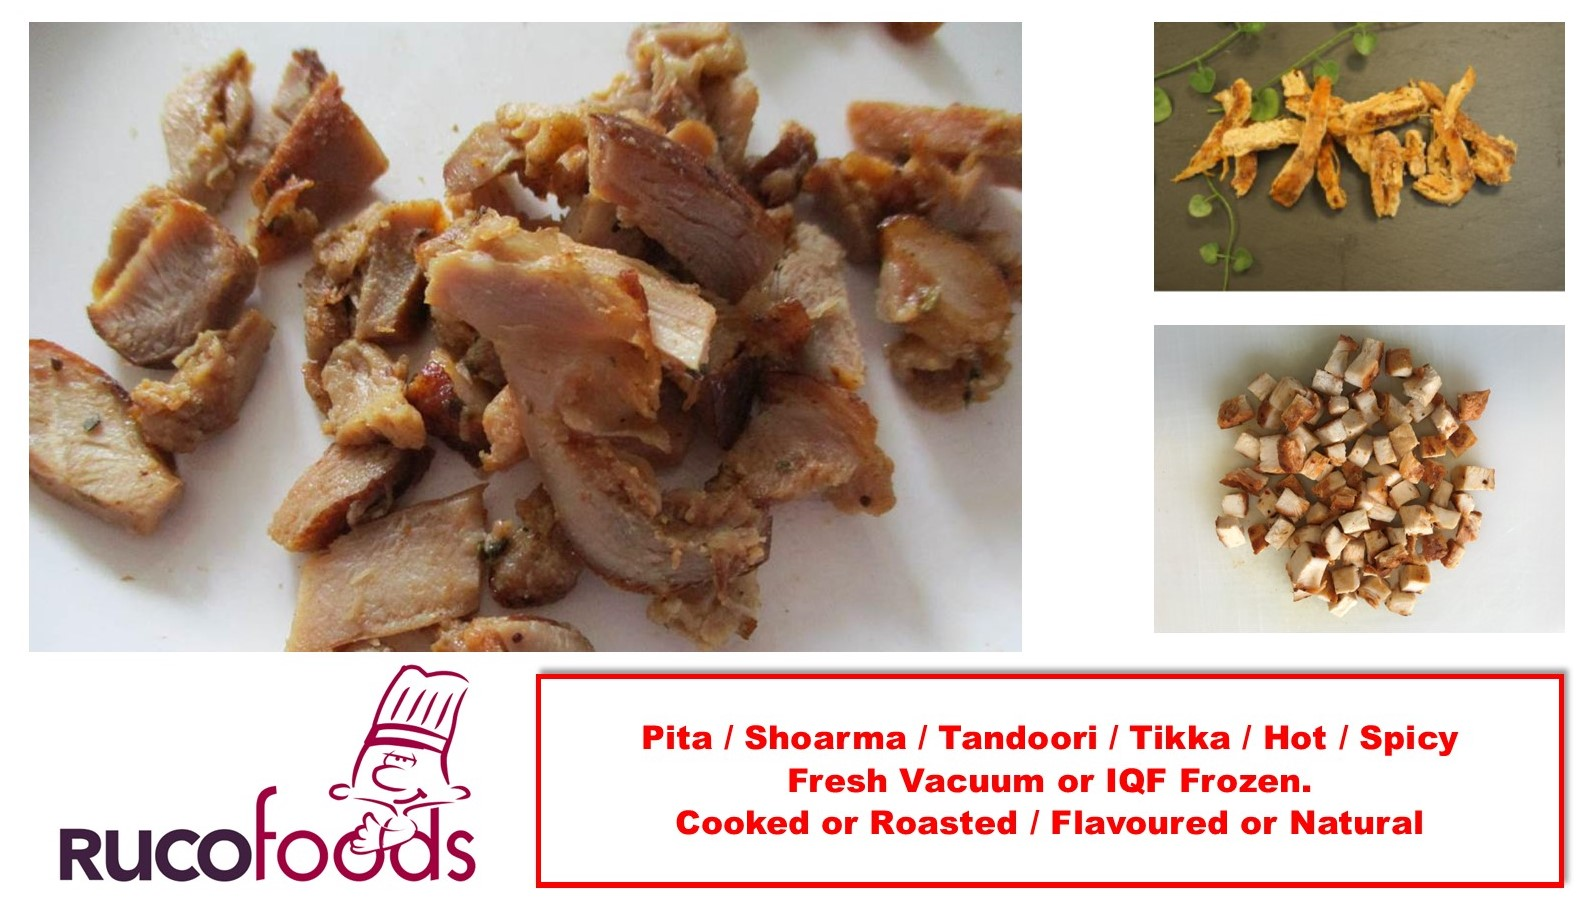 pita shoarma tandoori tikka hot spicy fresh vacuum iqf frozen cooked roasted shredded pulled fines hen chicken poultry